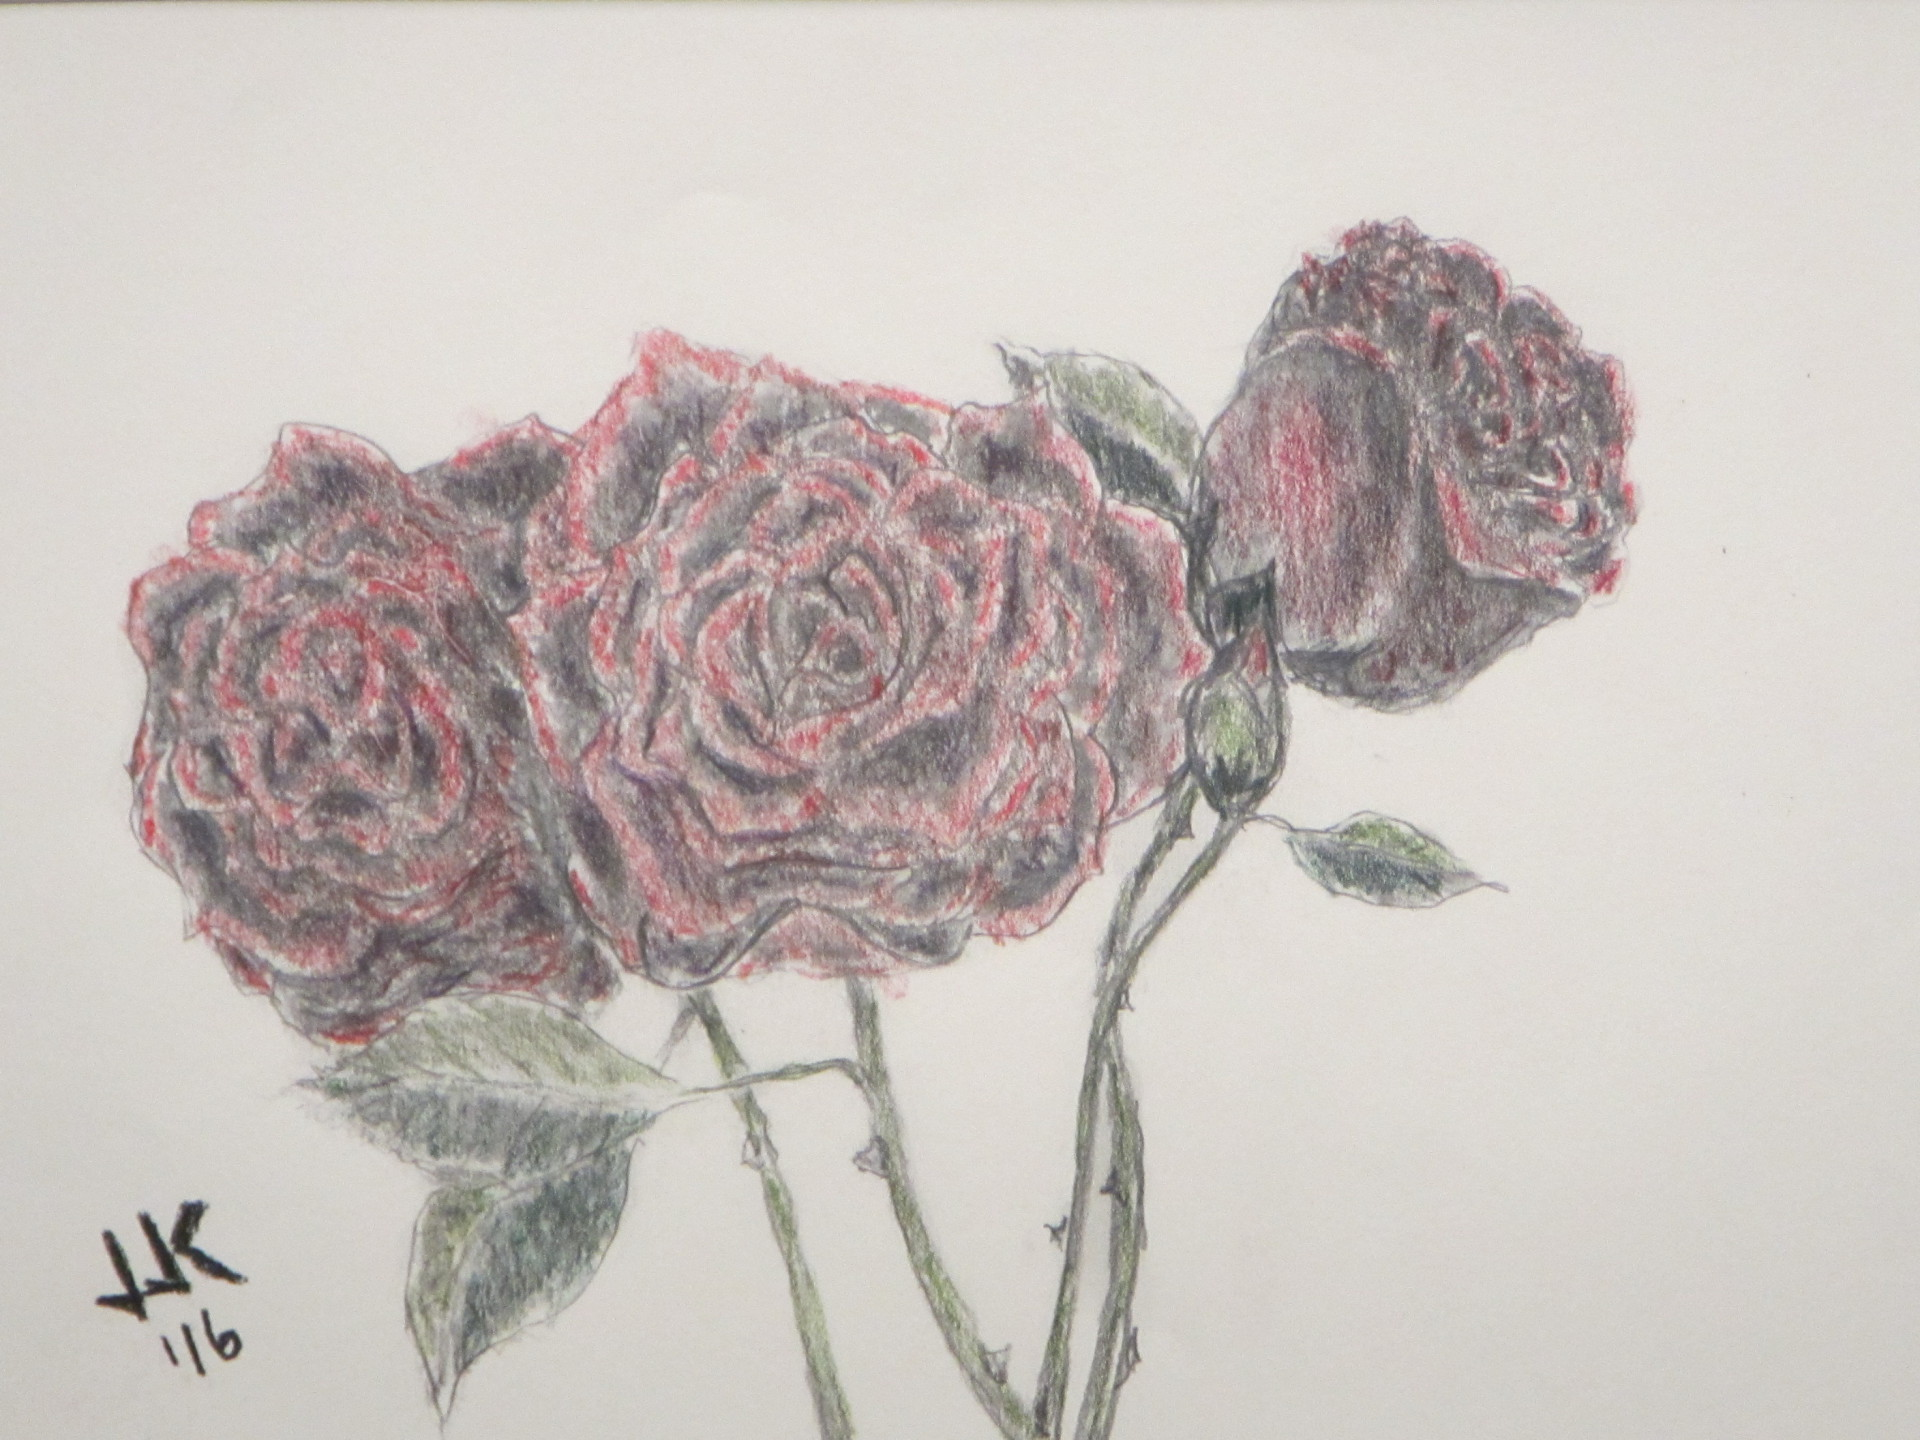 Pencil and colored woodless pencil drawing of three red roses.